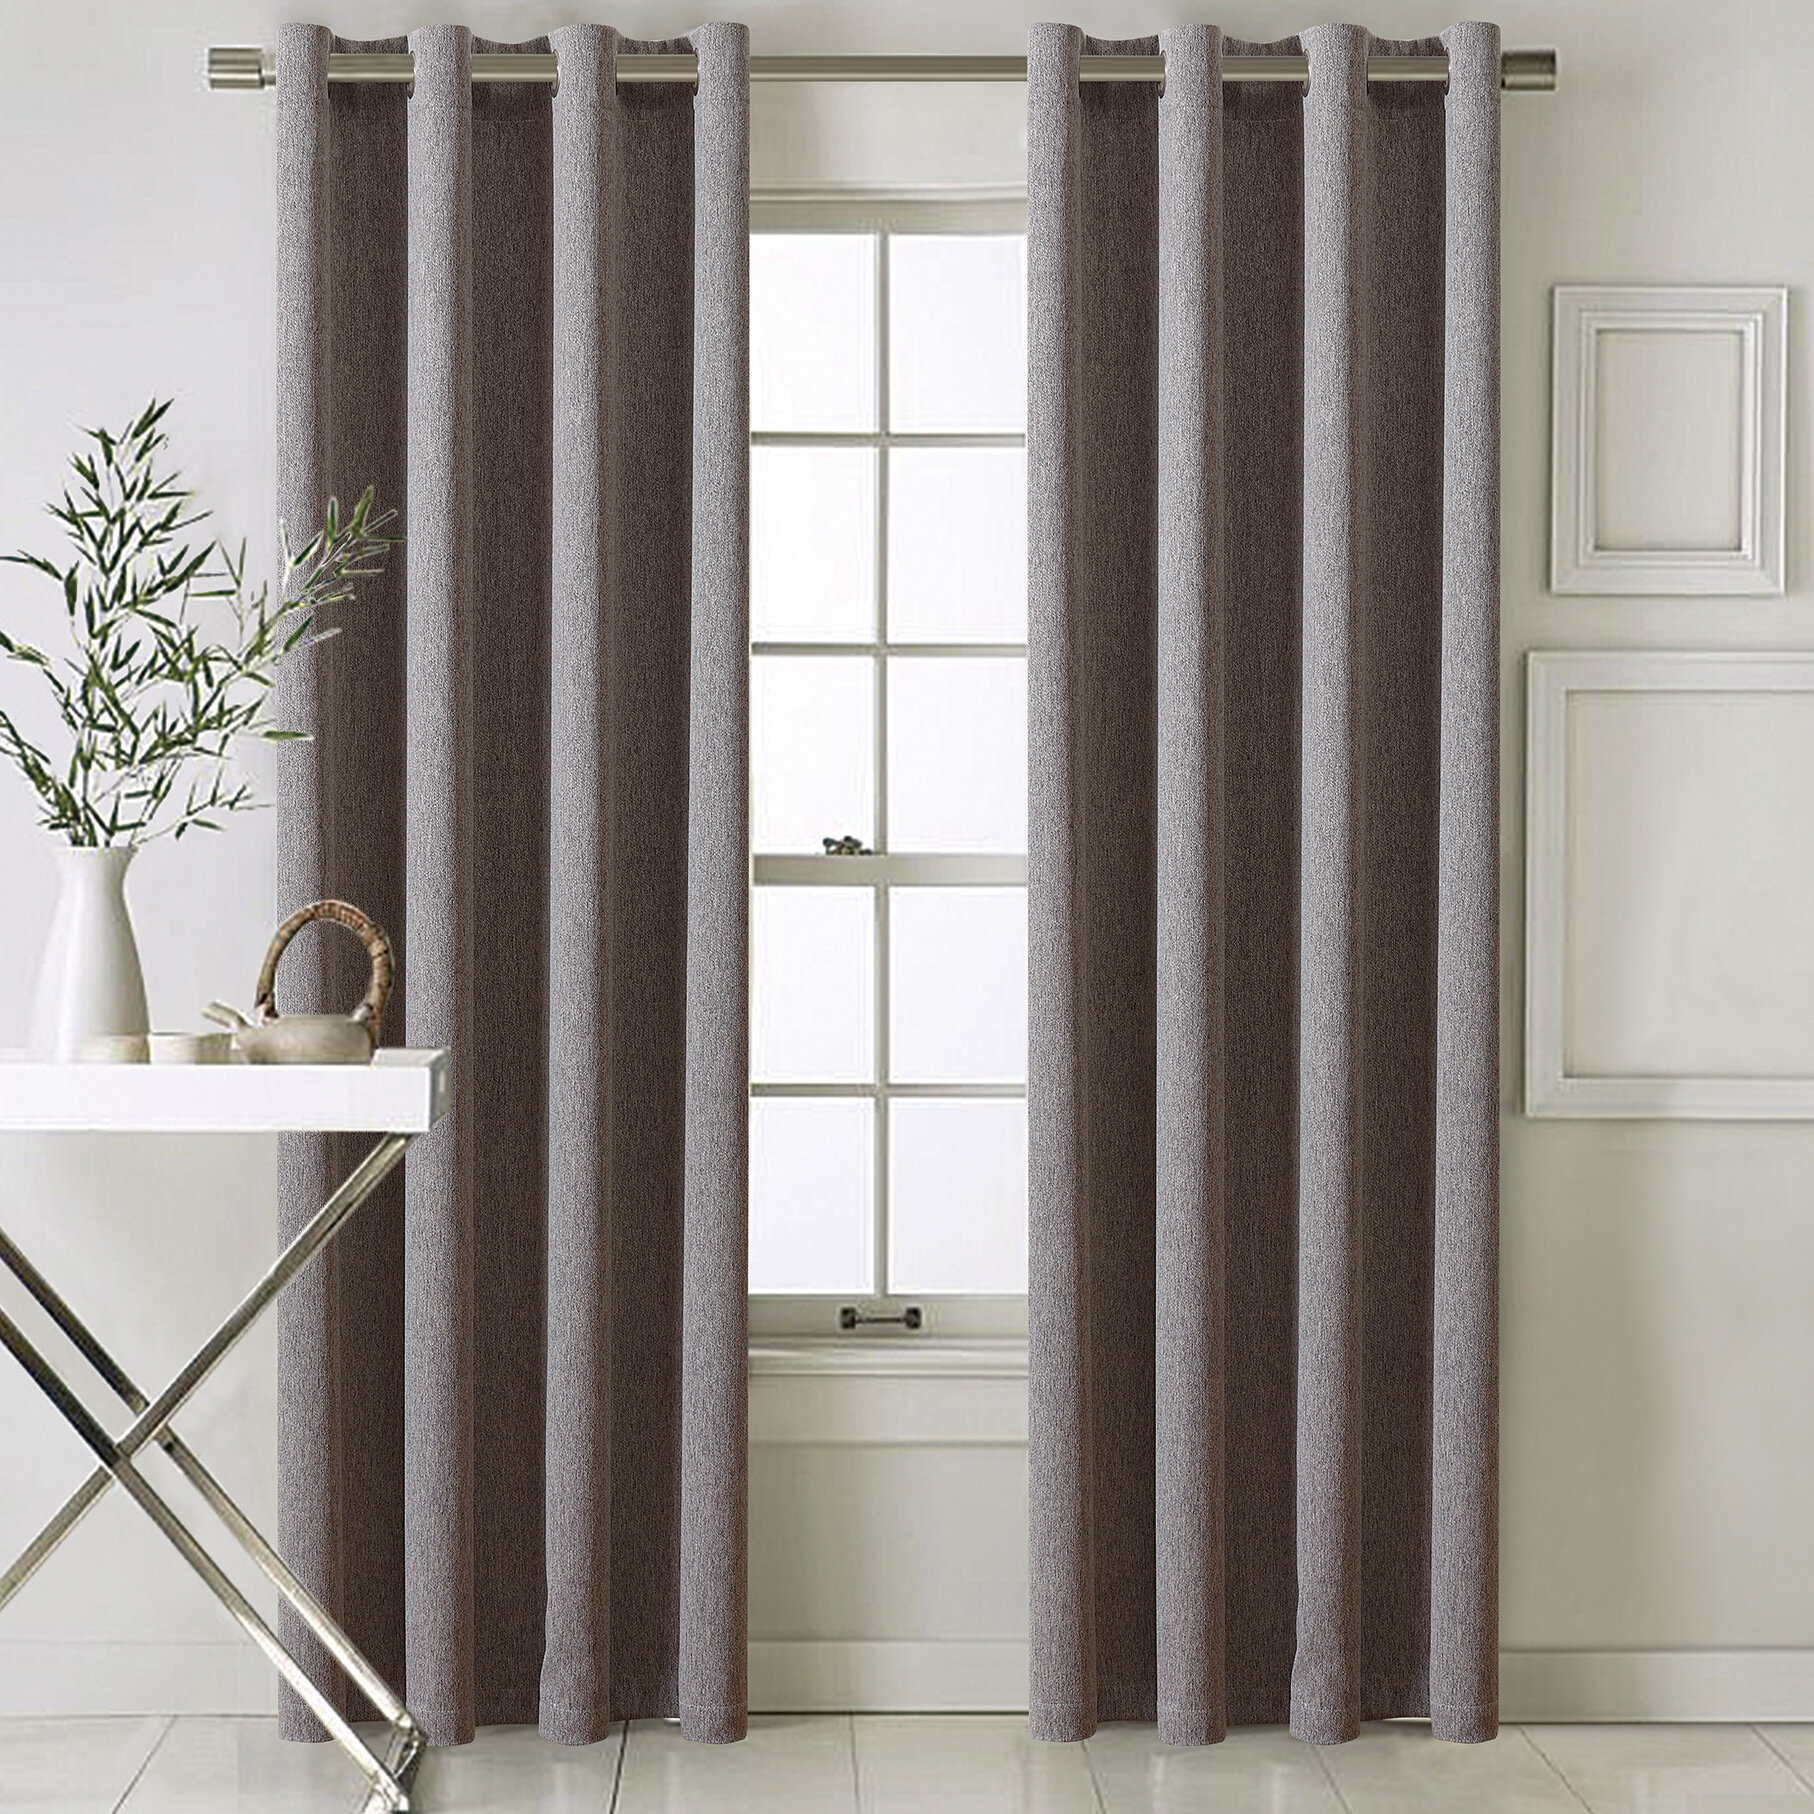 panels curtains grommet patio p ultimate panel curtain blackout x